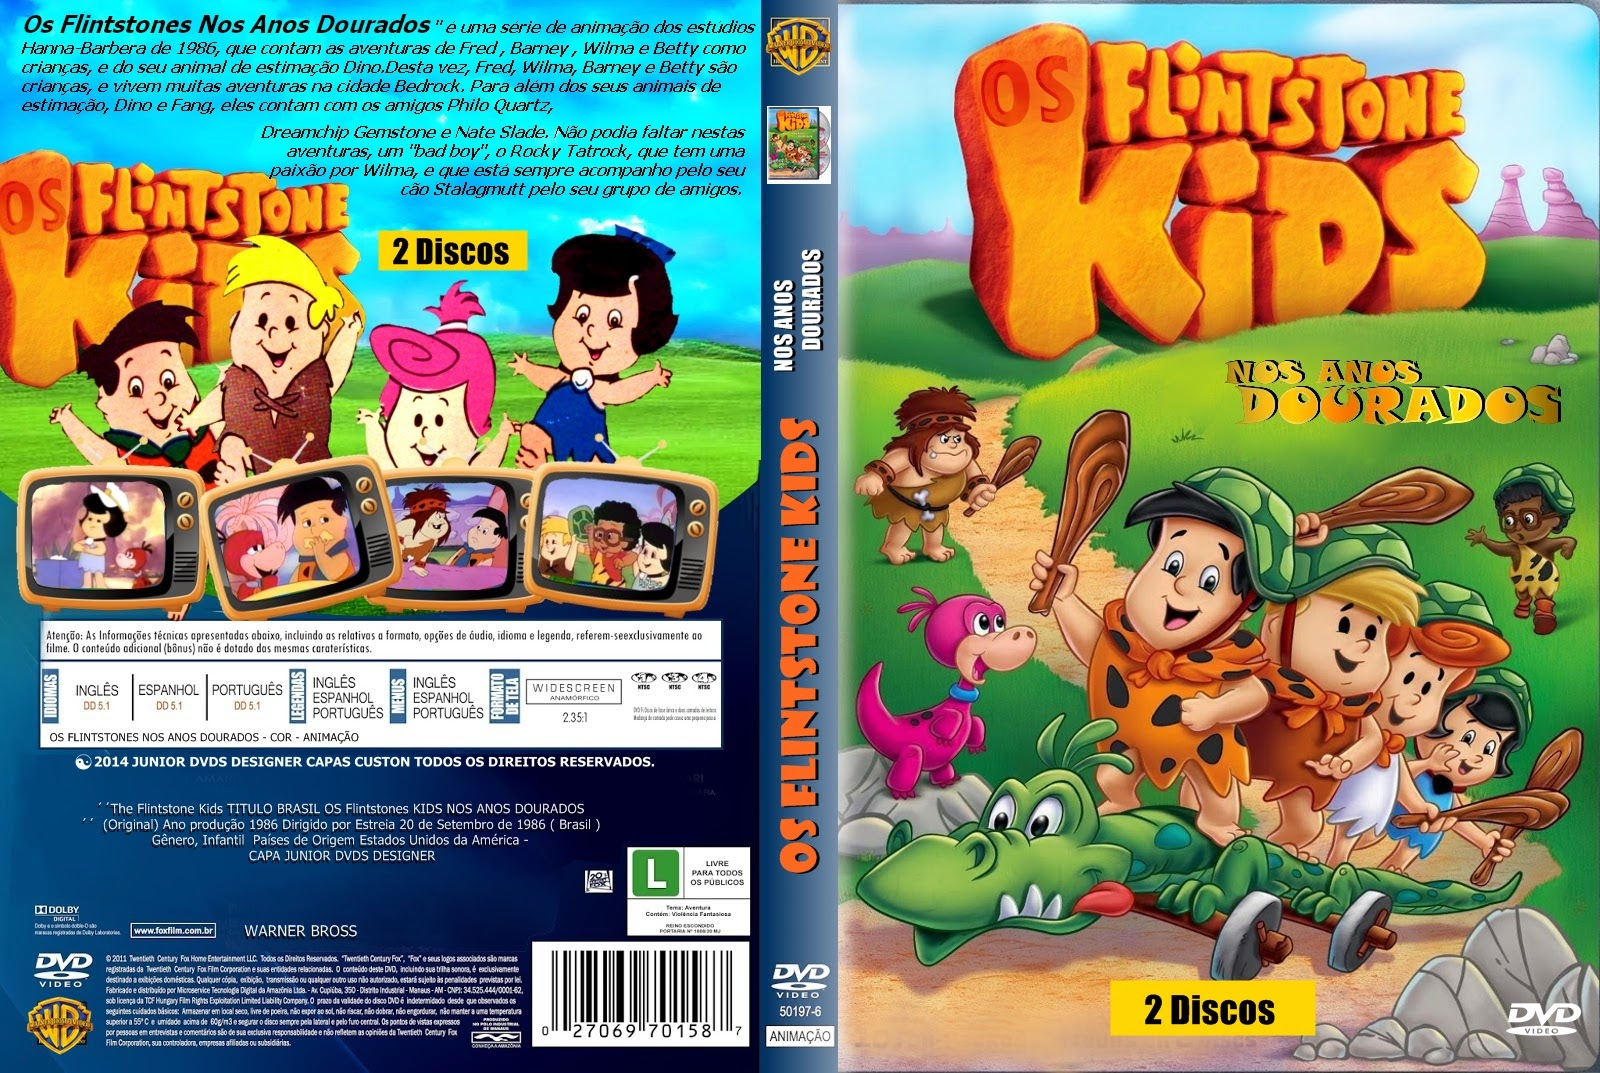 Filme Os Flintstones throughout junior dvds : capa do dvd os flintstones nos anos dourados (pedido